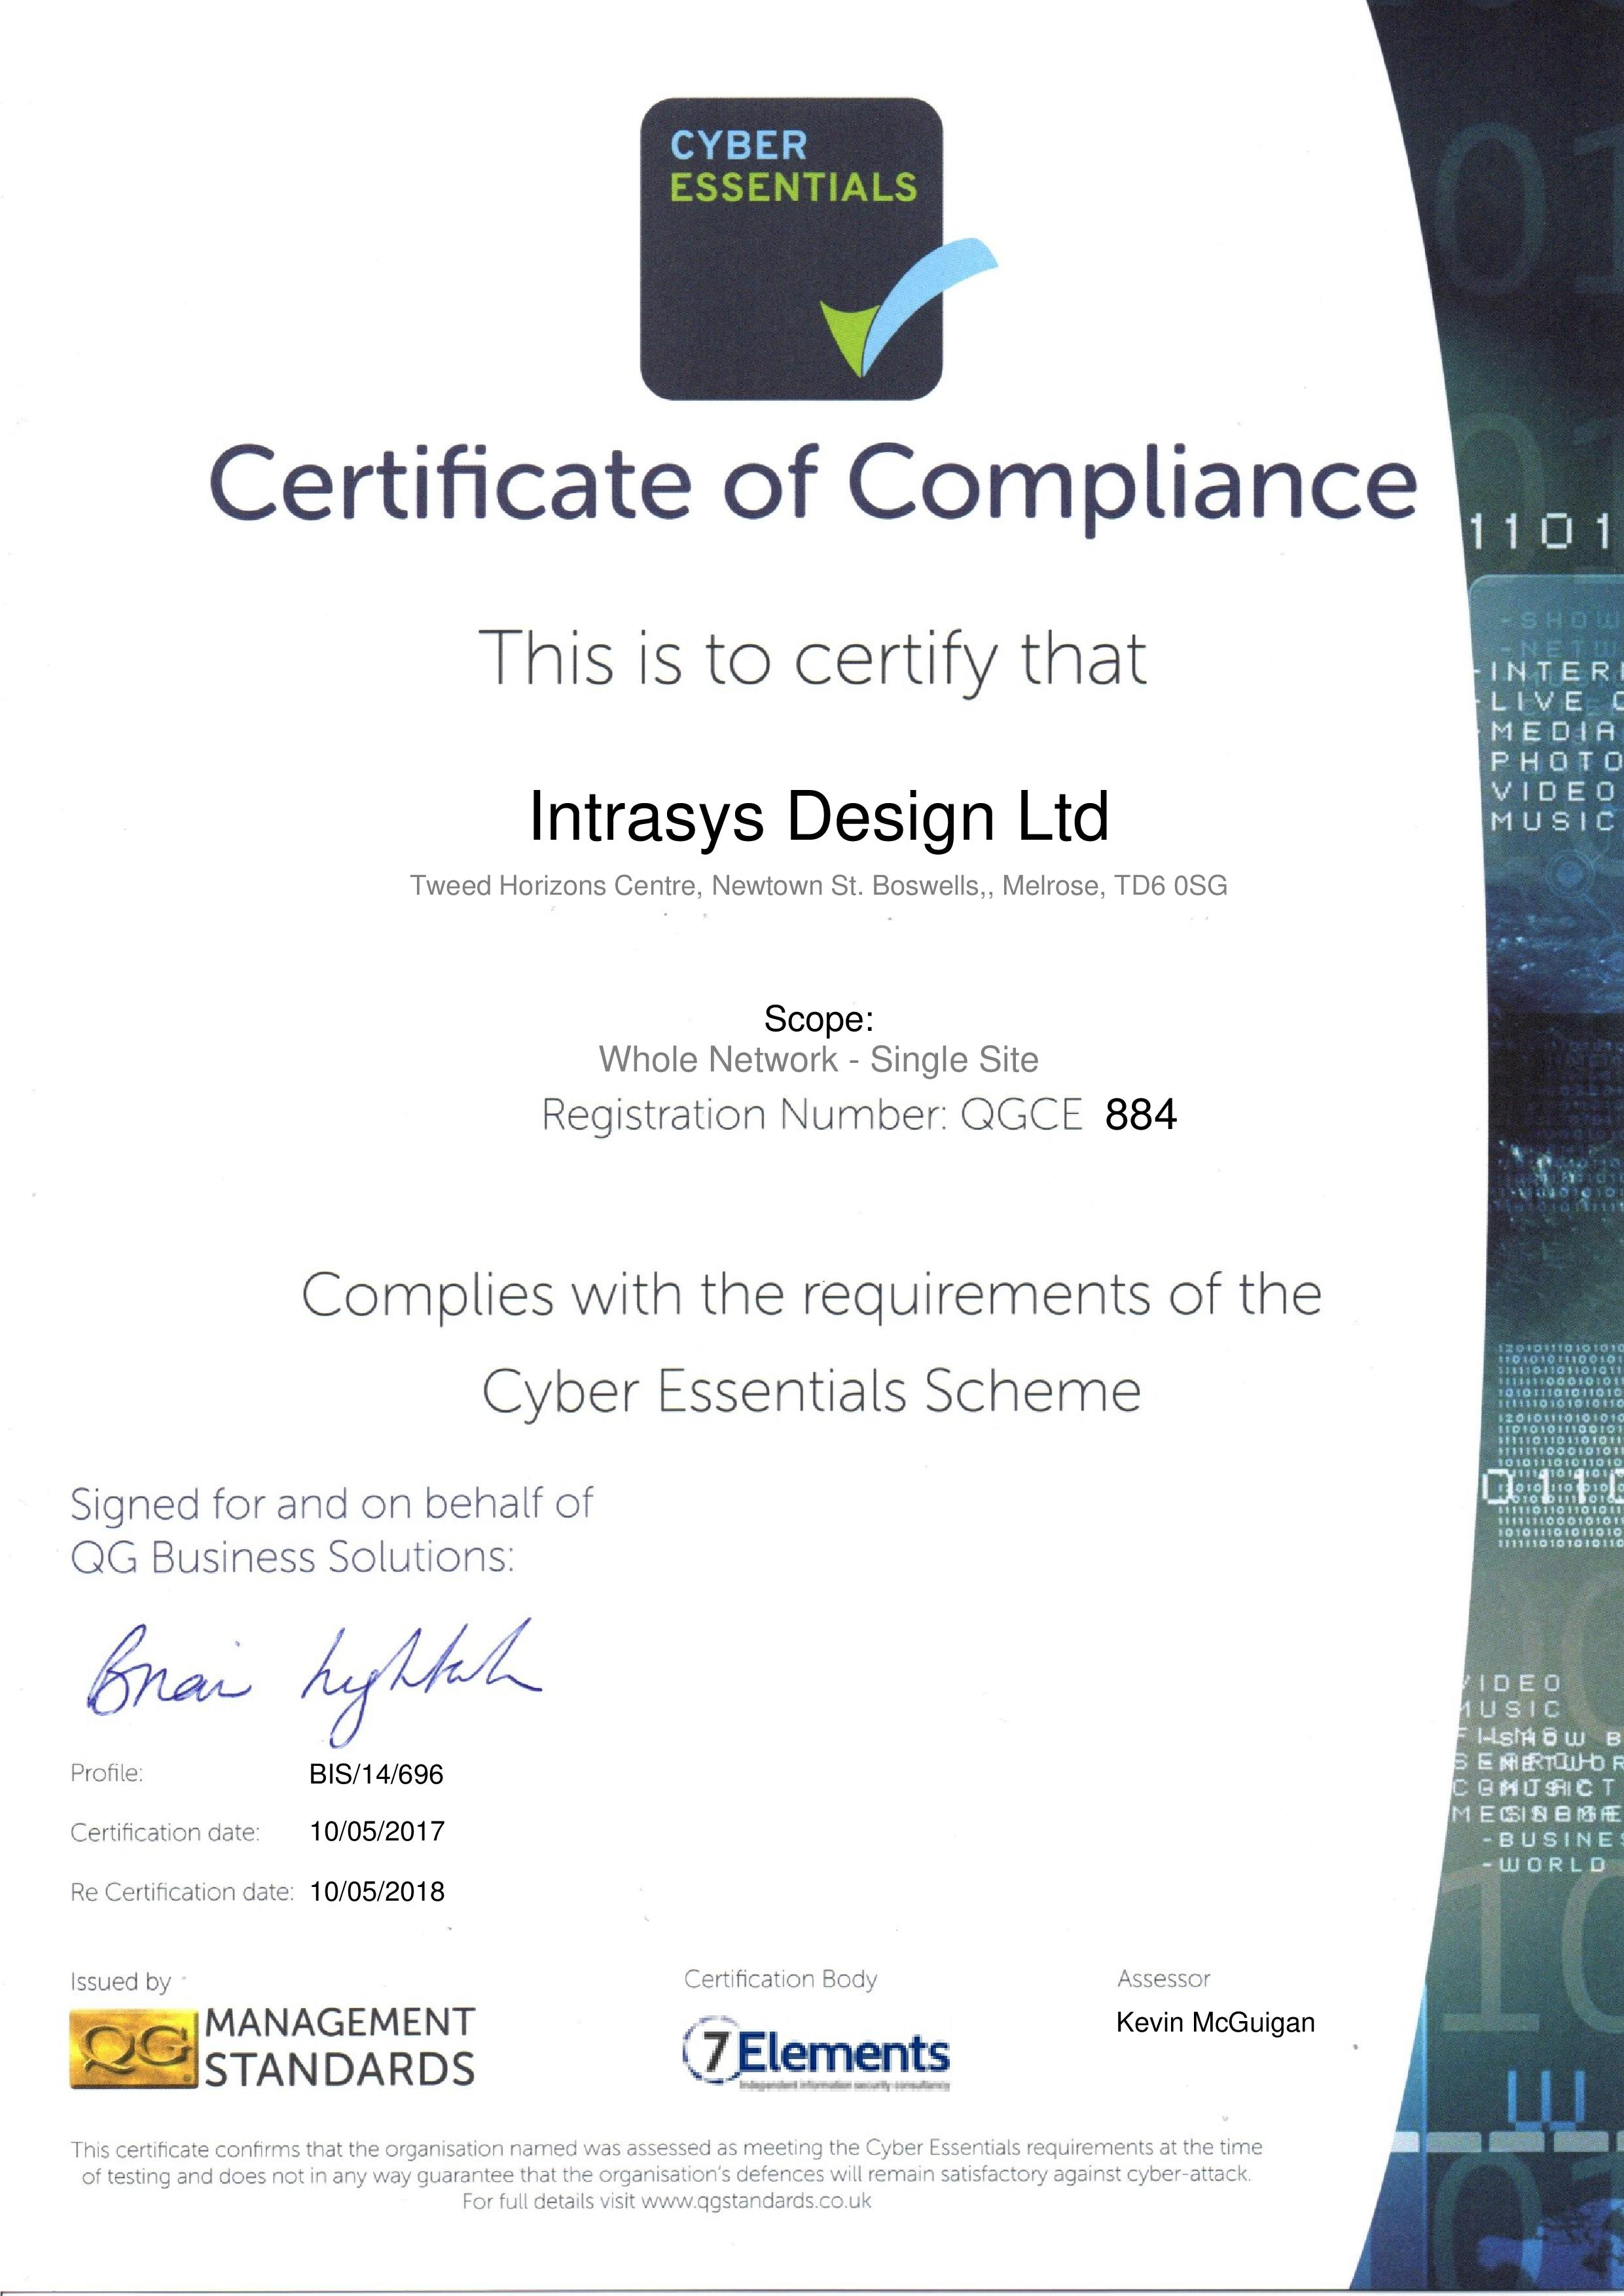 QGCE884 Intrasys Design Ltd